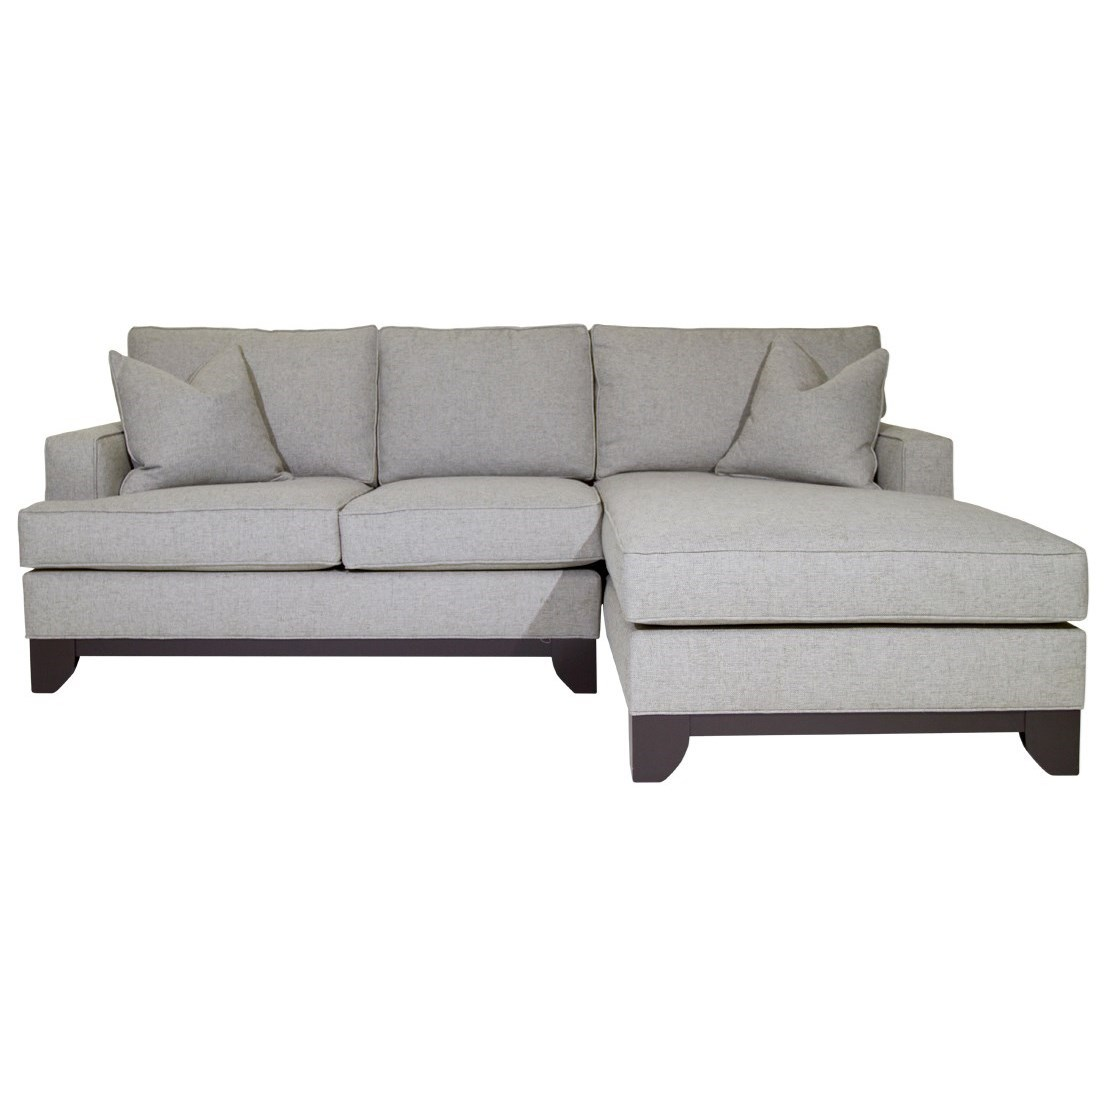 Nathan Anthony Darby II Sectional - Item Number: DARBY